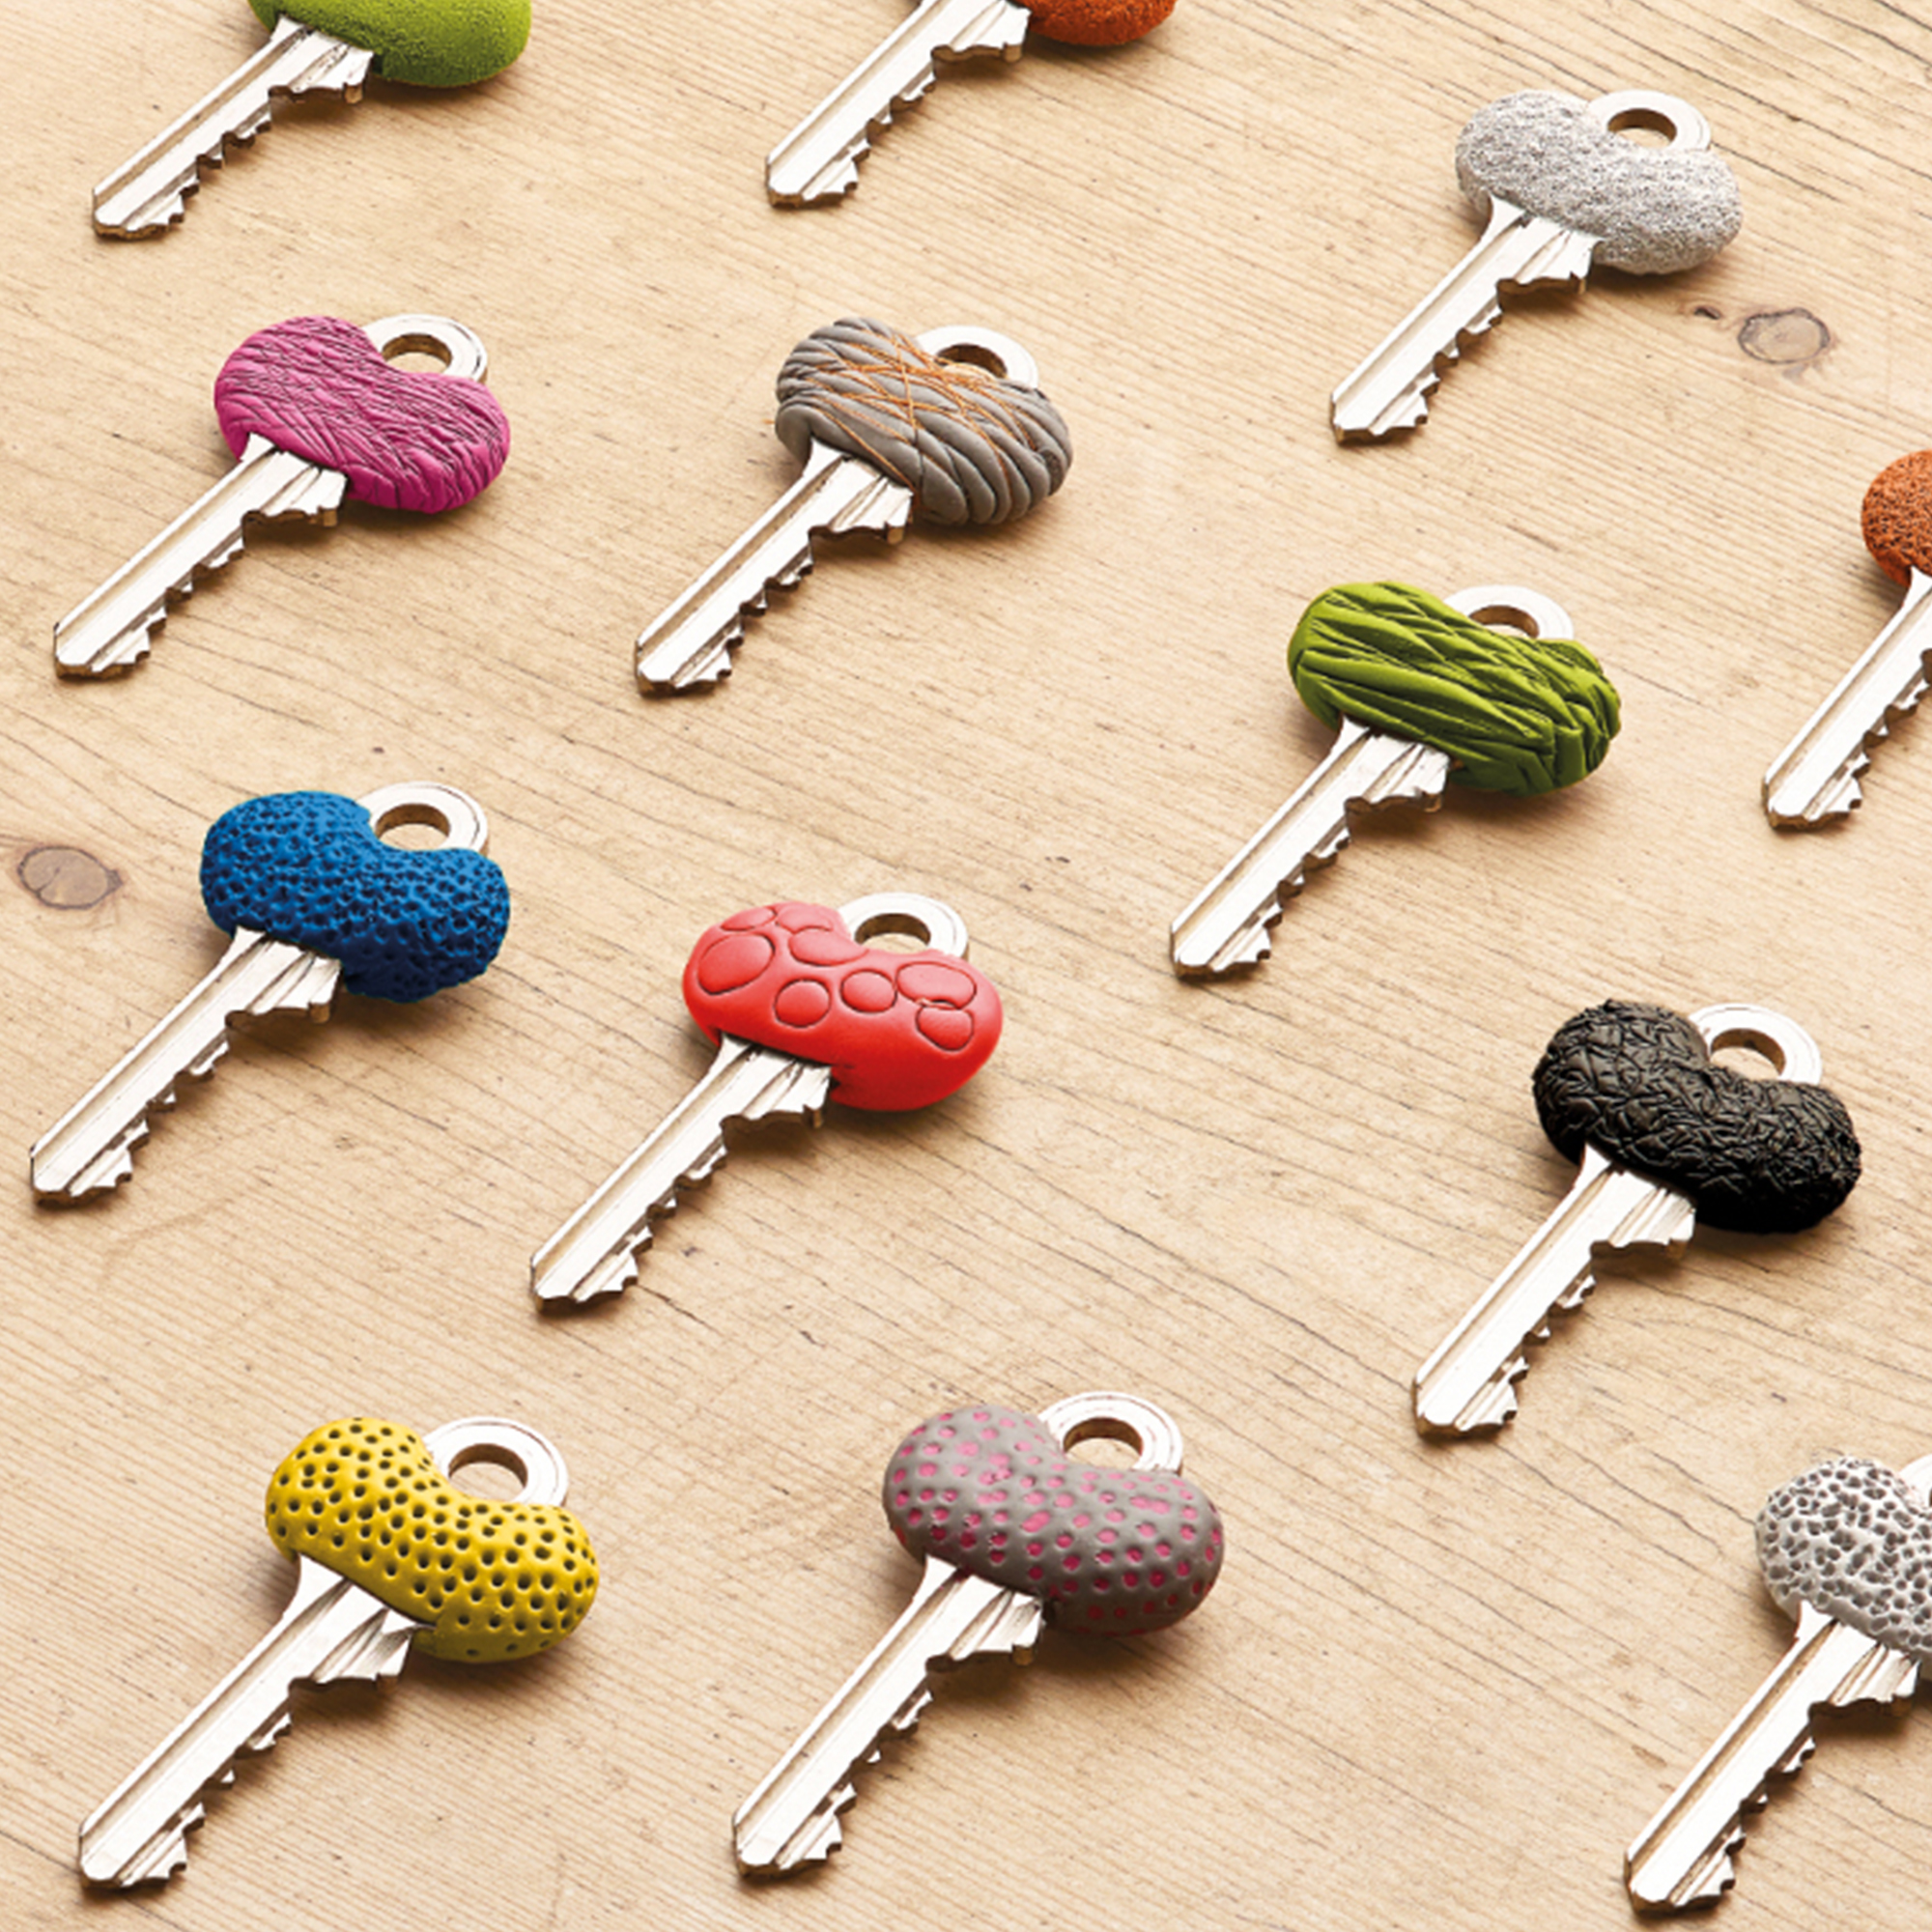 keys with different sugru designs